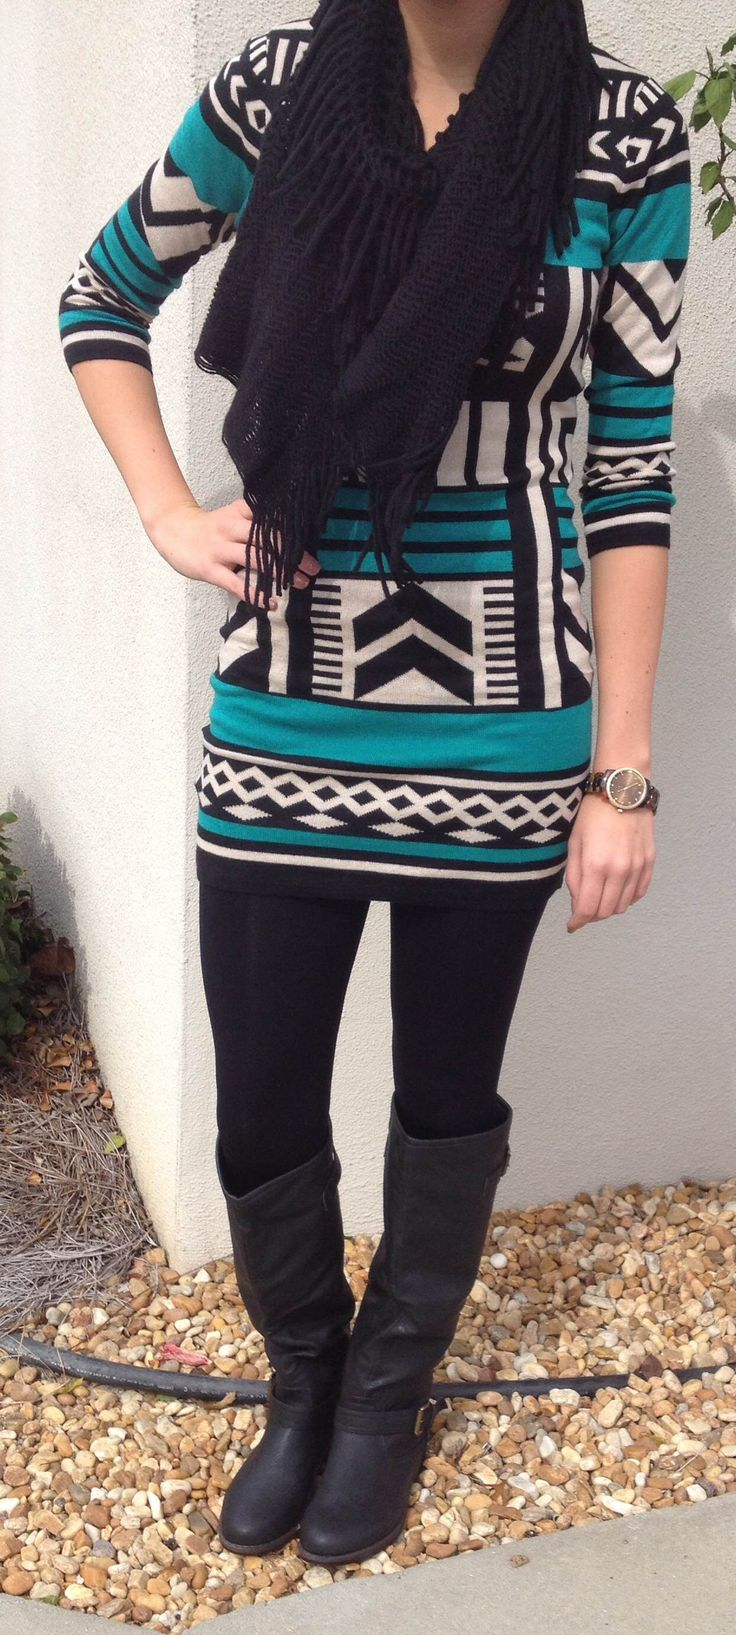 Tribal Print Sweater Dress, Black Leggings, Boots, Black Scarf